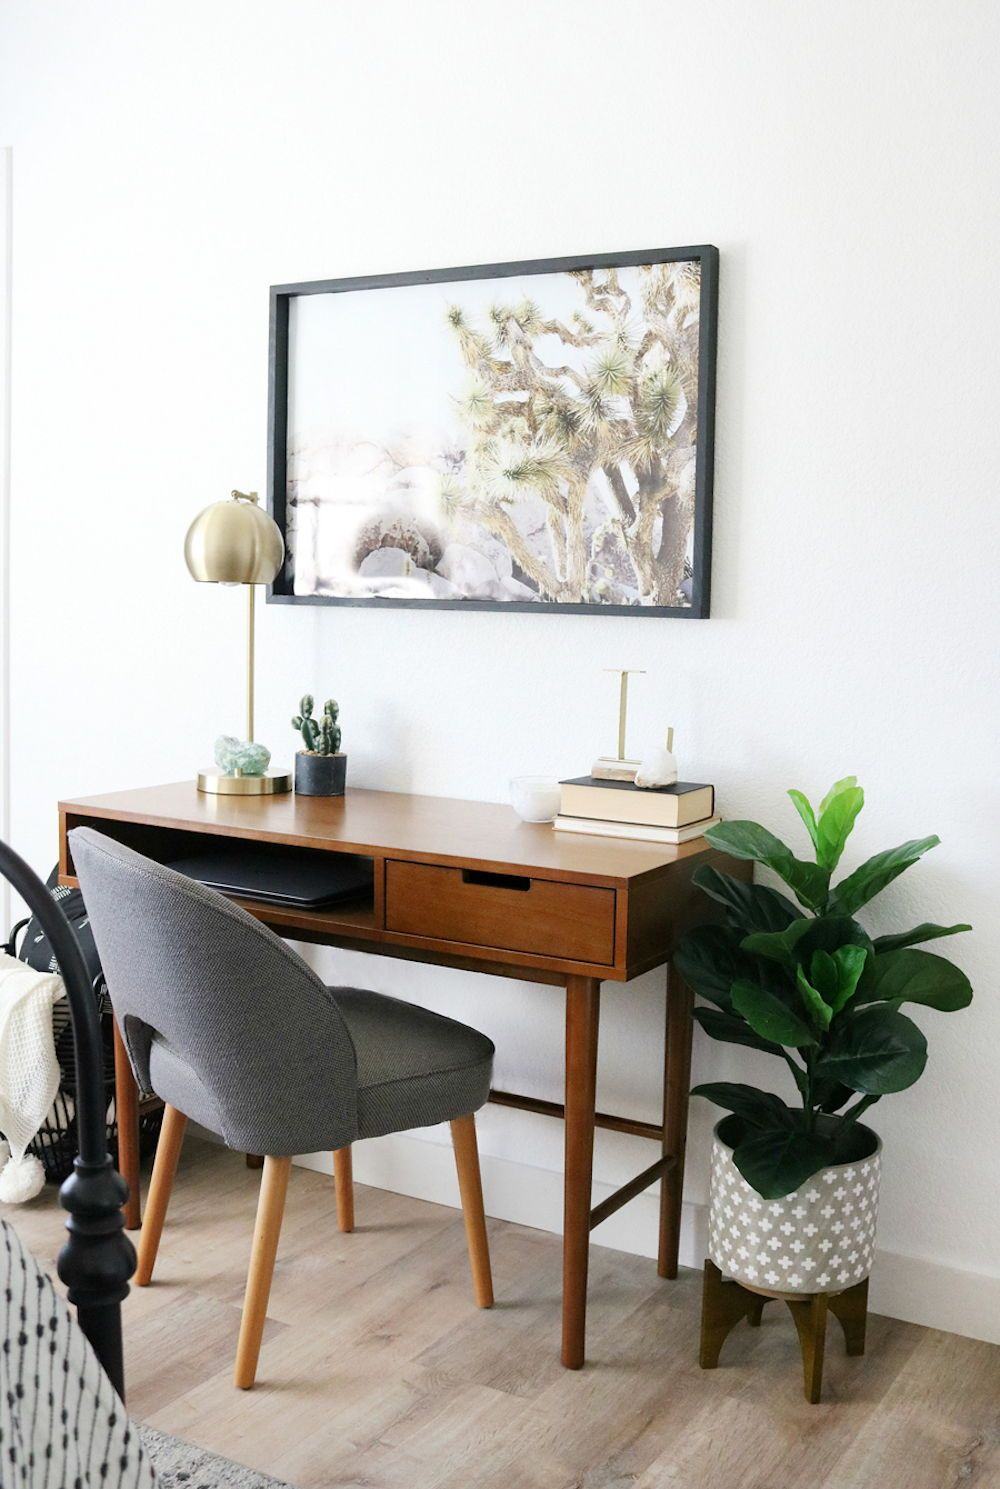 Better Homes Gardens Flynn Mid Century Modern Desk Multiple Colors Walmart Com Desk In Living Room Mid Century Modern Desk Home Office Design